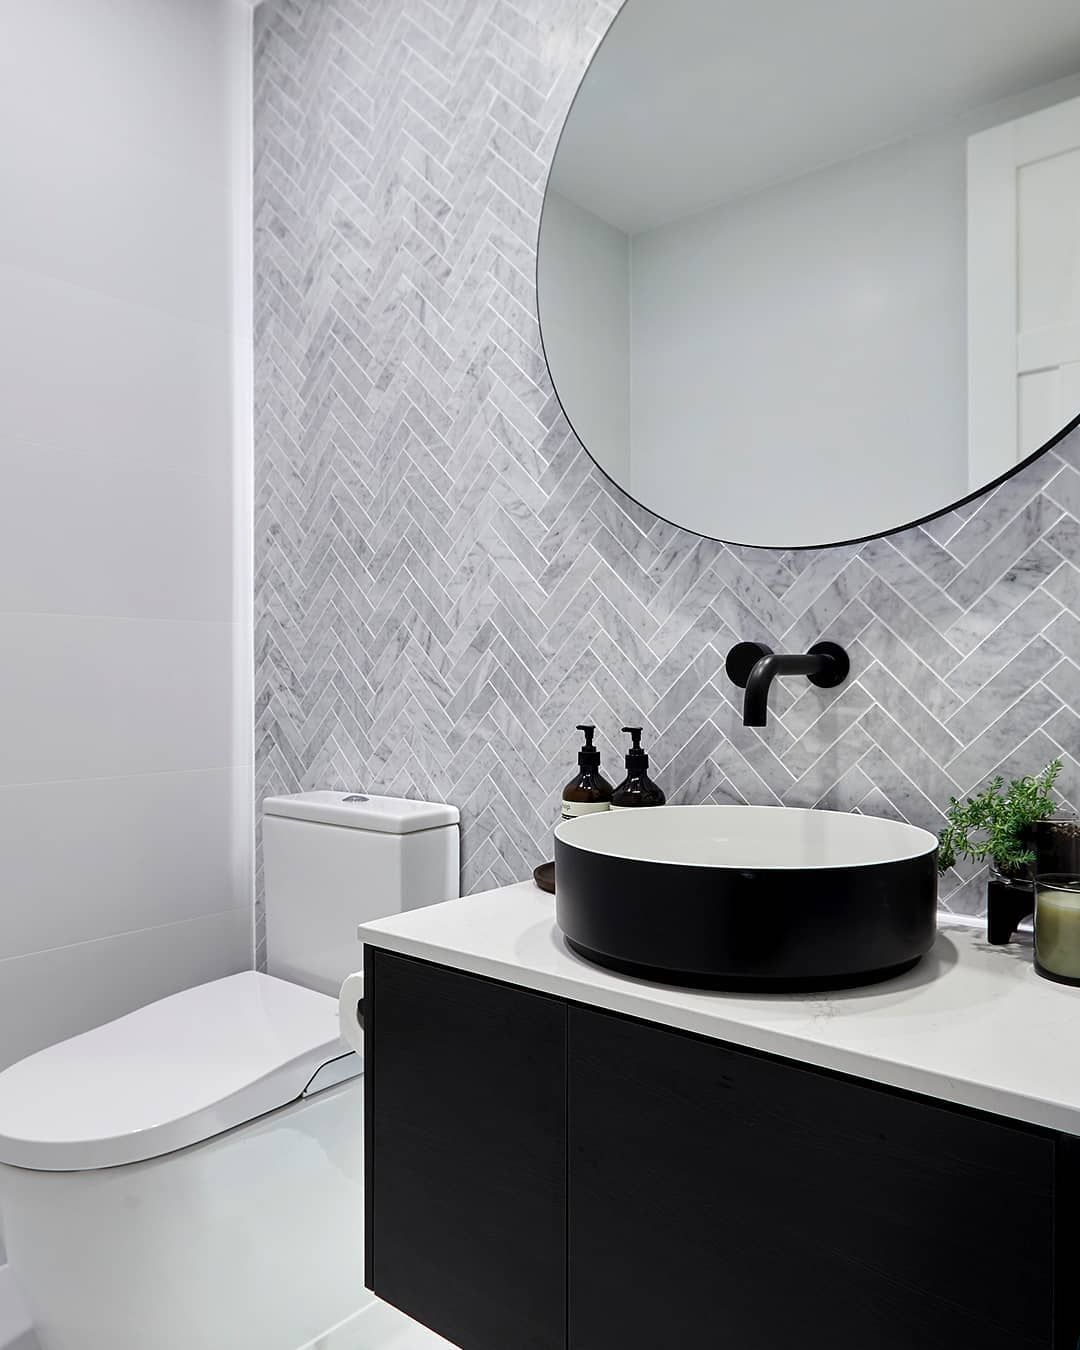 Reece Bathrooms On Instagram Kicking Off The Weekend With Smart